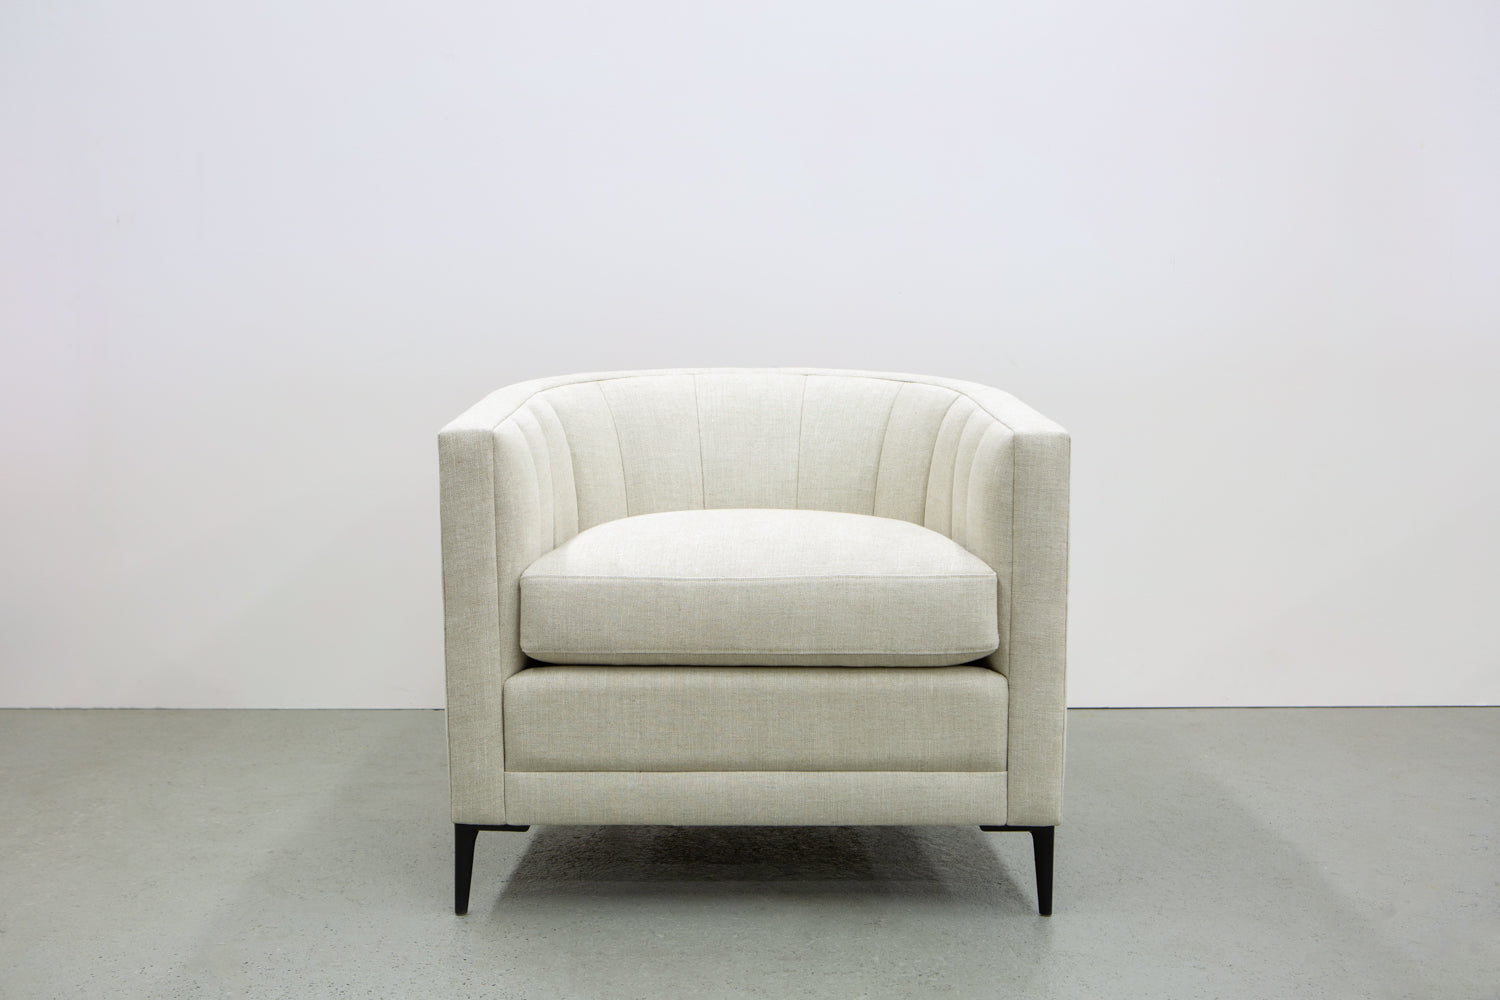 Product shot of the ffabb home Coco Chair upholstered in Linen - Oatmeal